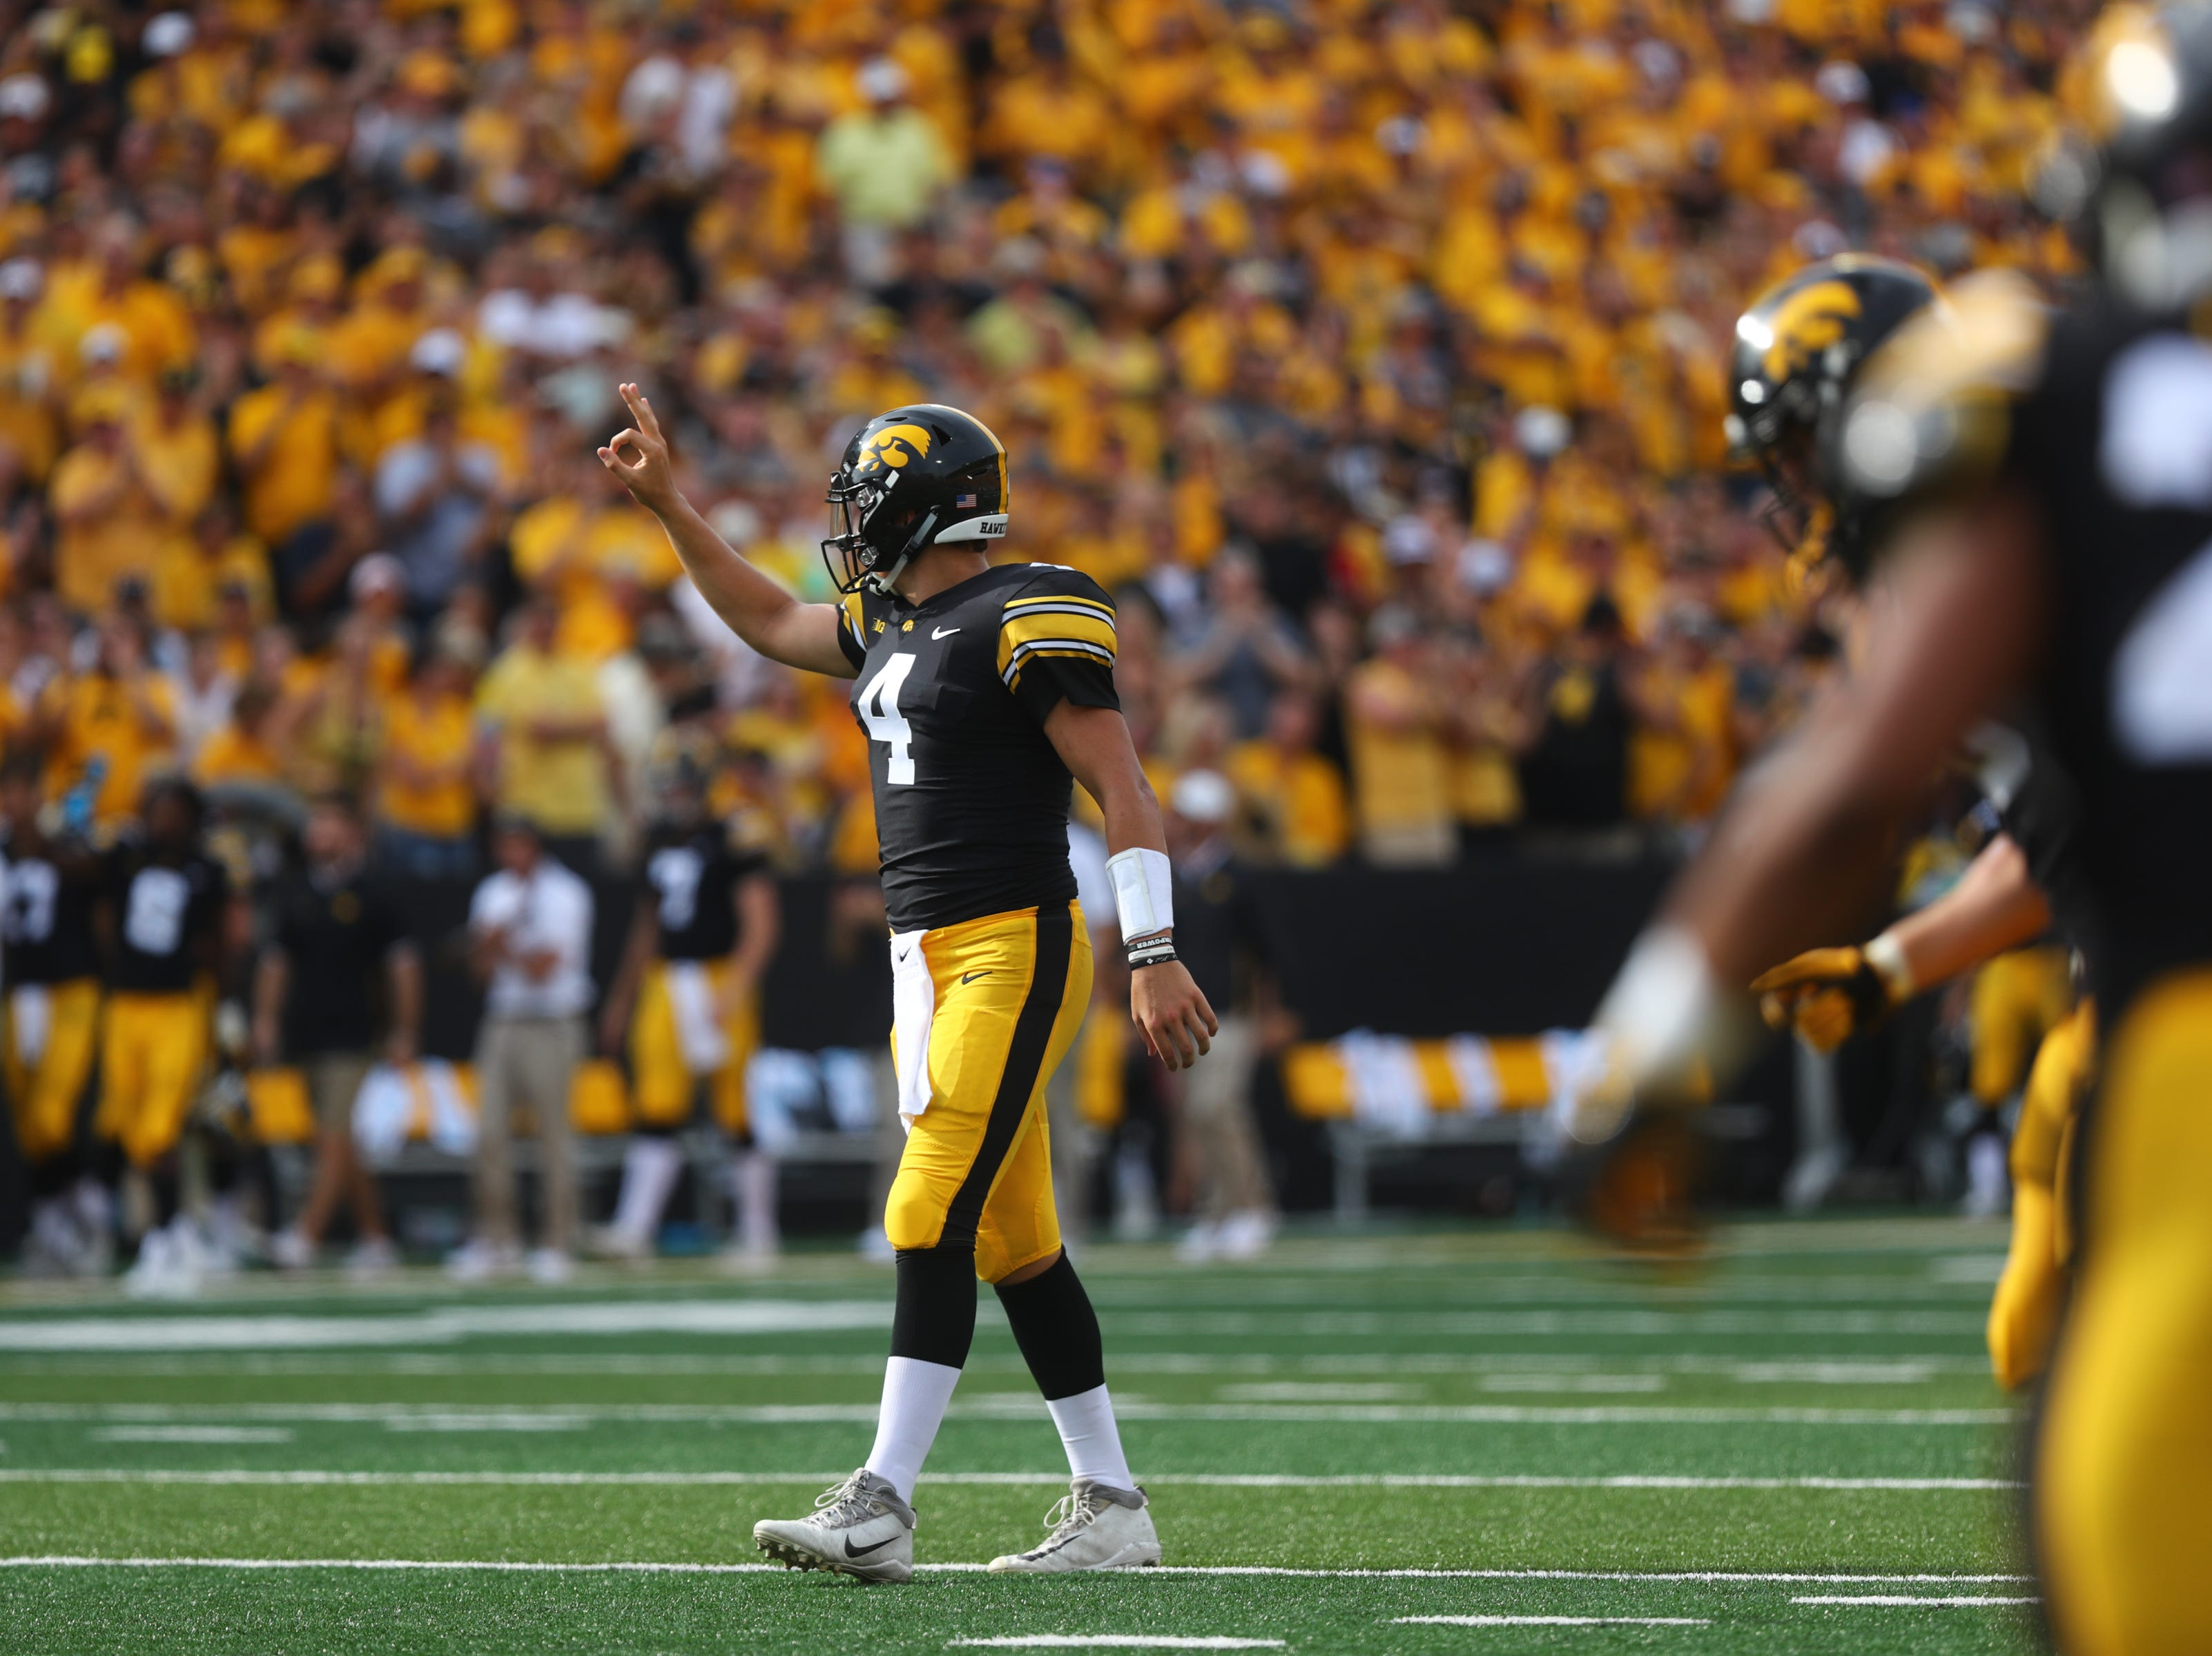 Iowa quarterback Nate Stanley sets up a play during the Hawkeyes' game against Northern Illinois at Kinnick Stadium on Satuday, Sept. 1, 2018.